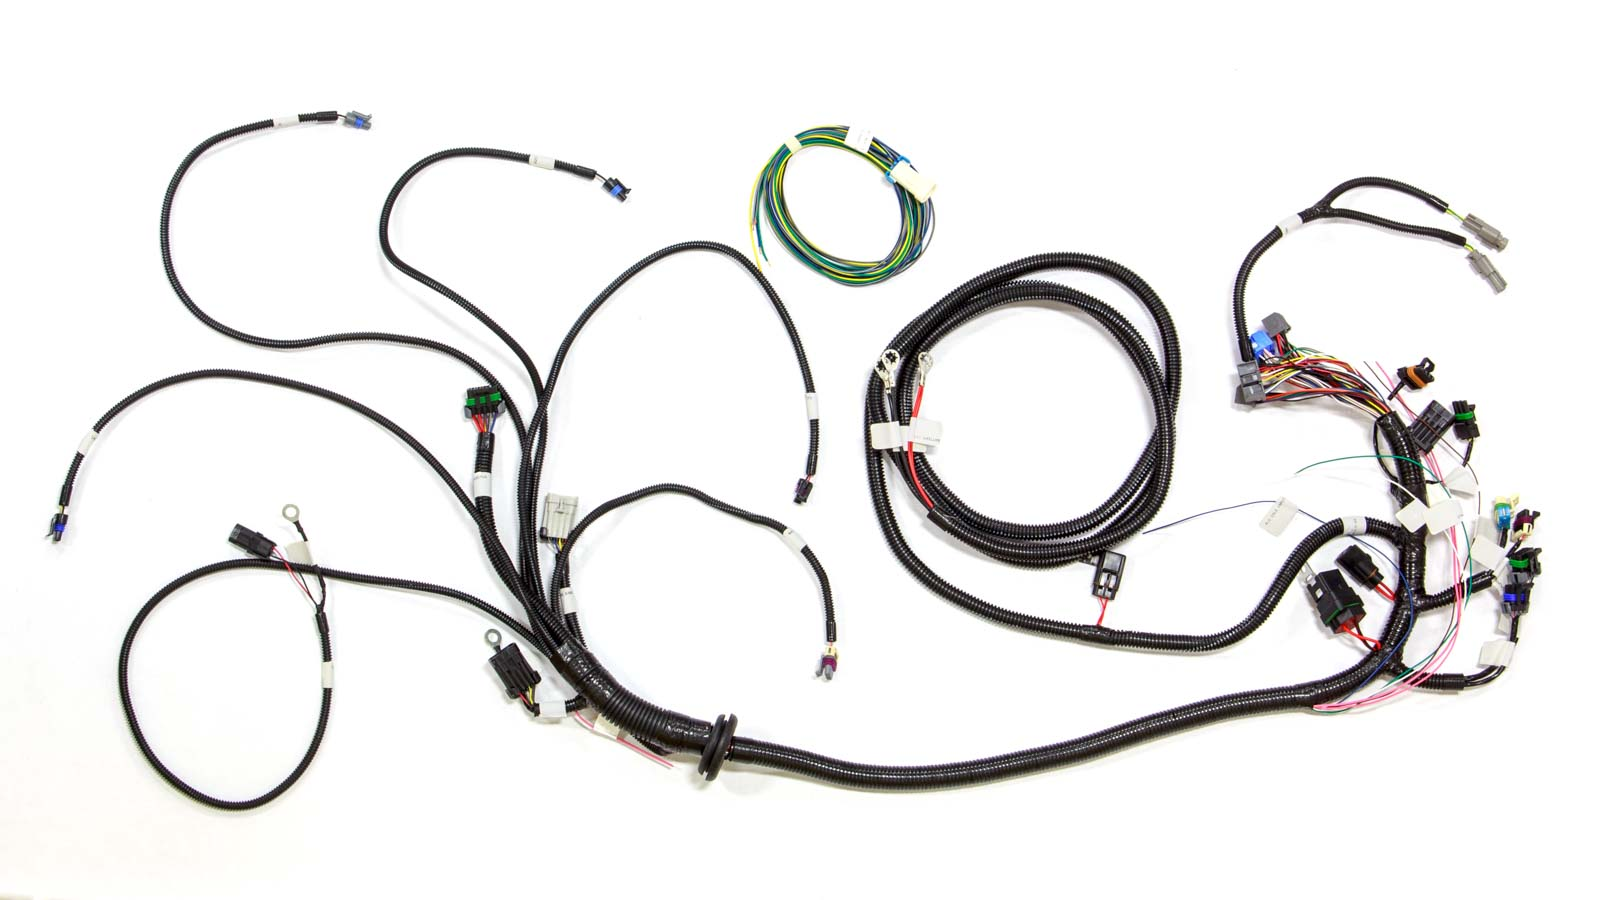 Shop for FAST ELECTRONICS Wiring Harnesses :: Racecar ... Fast Wiring Harness Ls on electronic throttle wiring harness, gm 6 5 diesel 3 wire harness, lc harness, psi wire harness, fr harness, test harness, gm engine wiring harness, aviator harness, ls3 engine wiring harness,